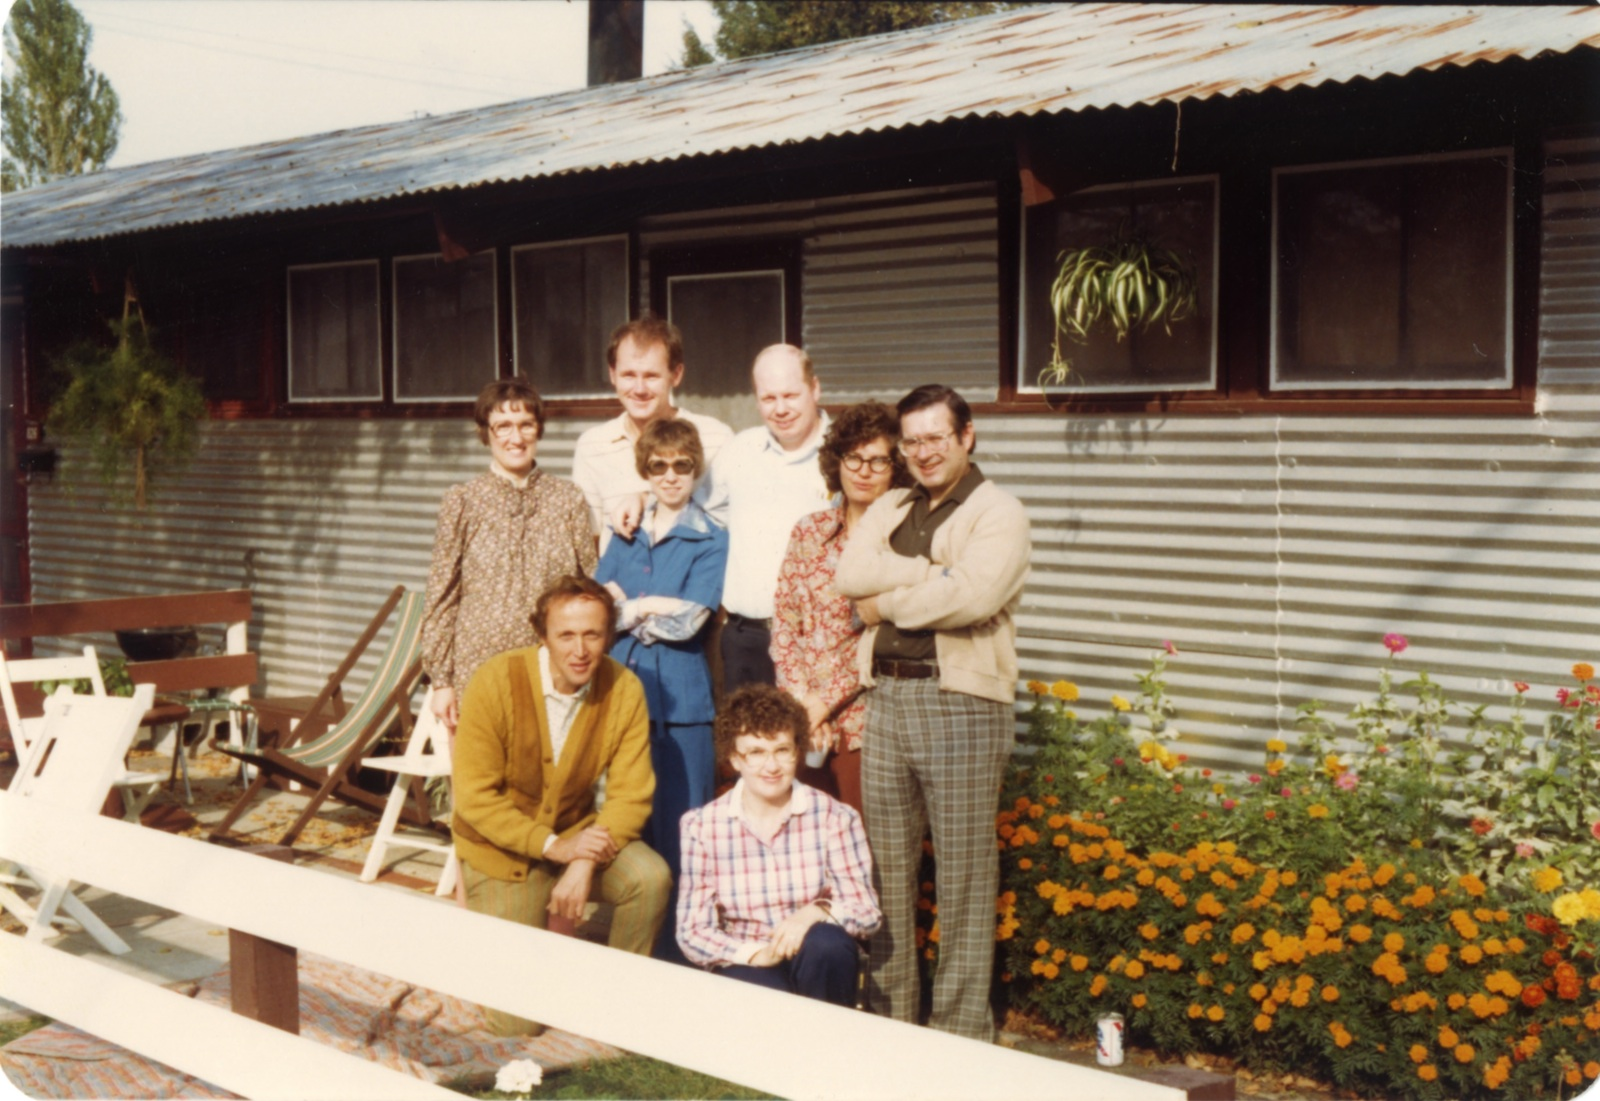 Patio party at 824 Pammel Court, home of Janet Jepeway. Left to right: Joyce and John Cook, Helen Boles and Stan, Roberta Brown (Shaffer), Jim Pomeroy, Bob Brown (kneeling), Barb Pomeroy (O